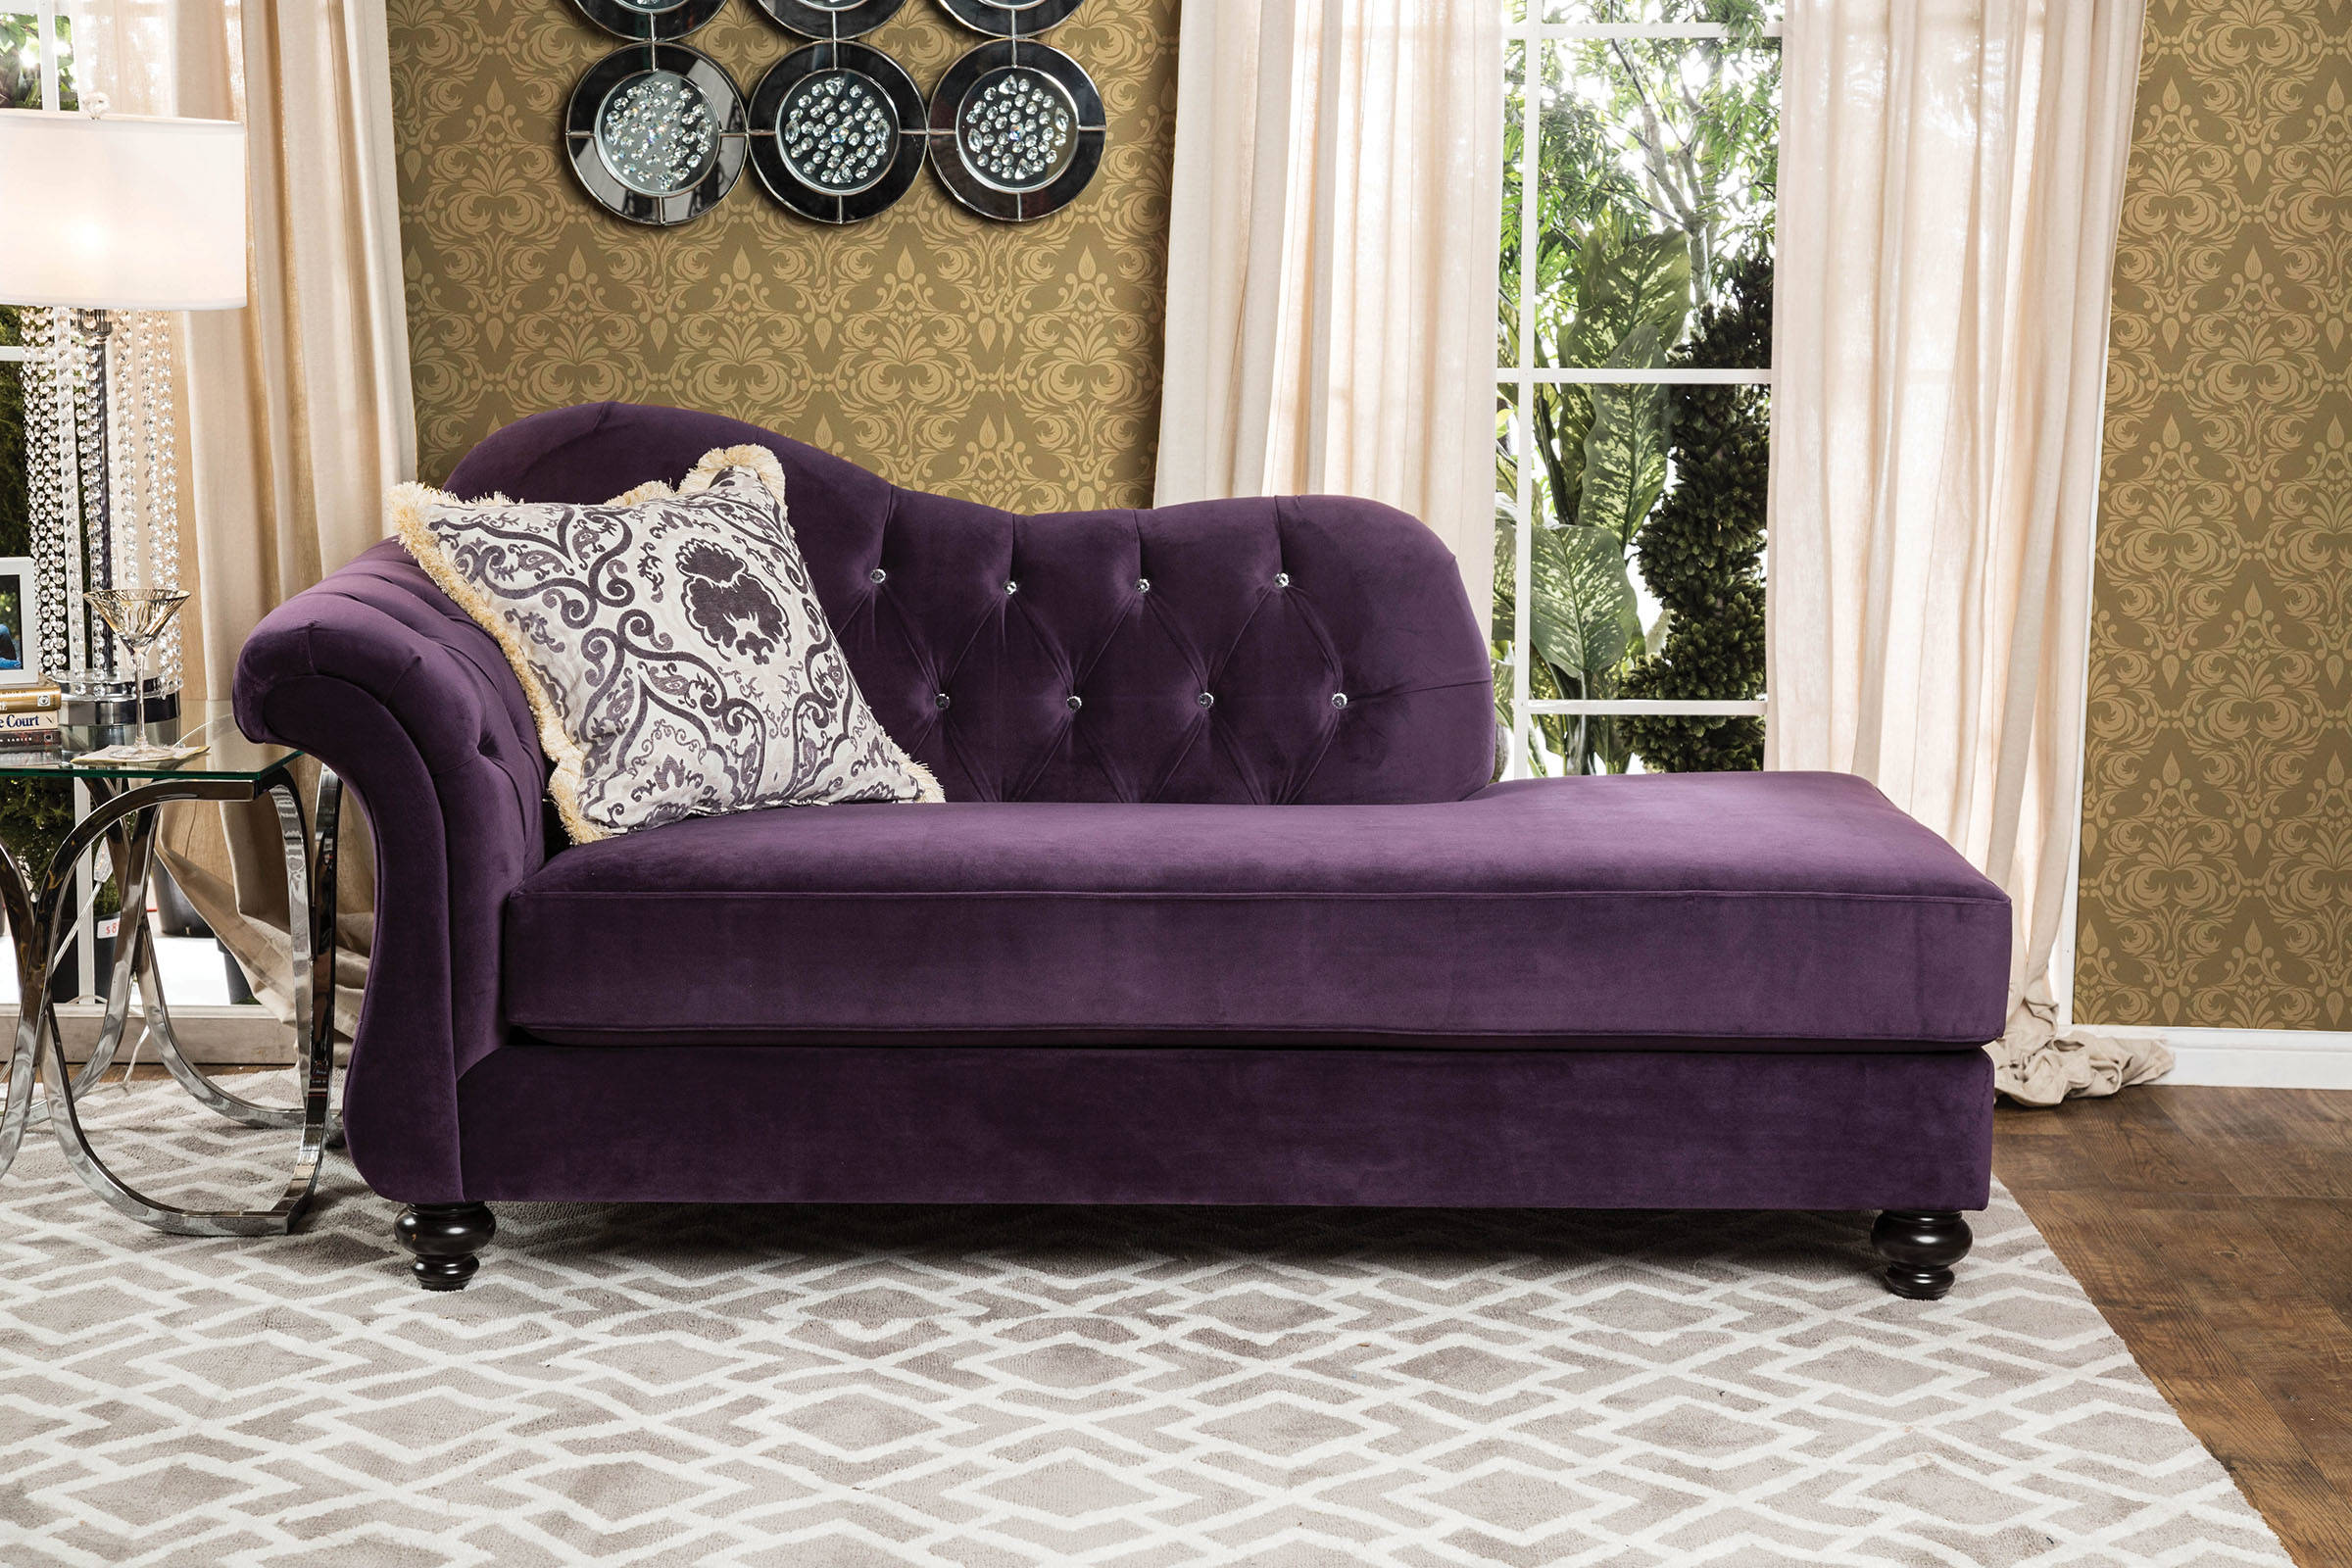 Furniture Of America Antoinette Purple Chaise The Classy Home